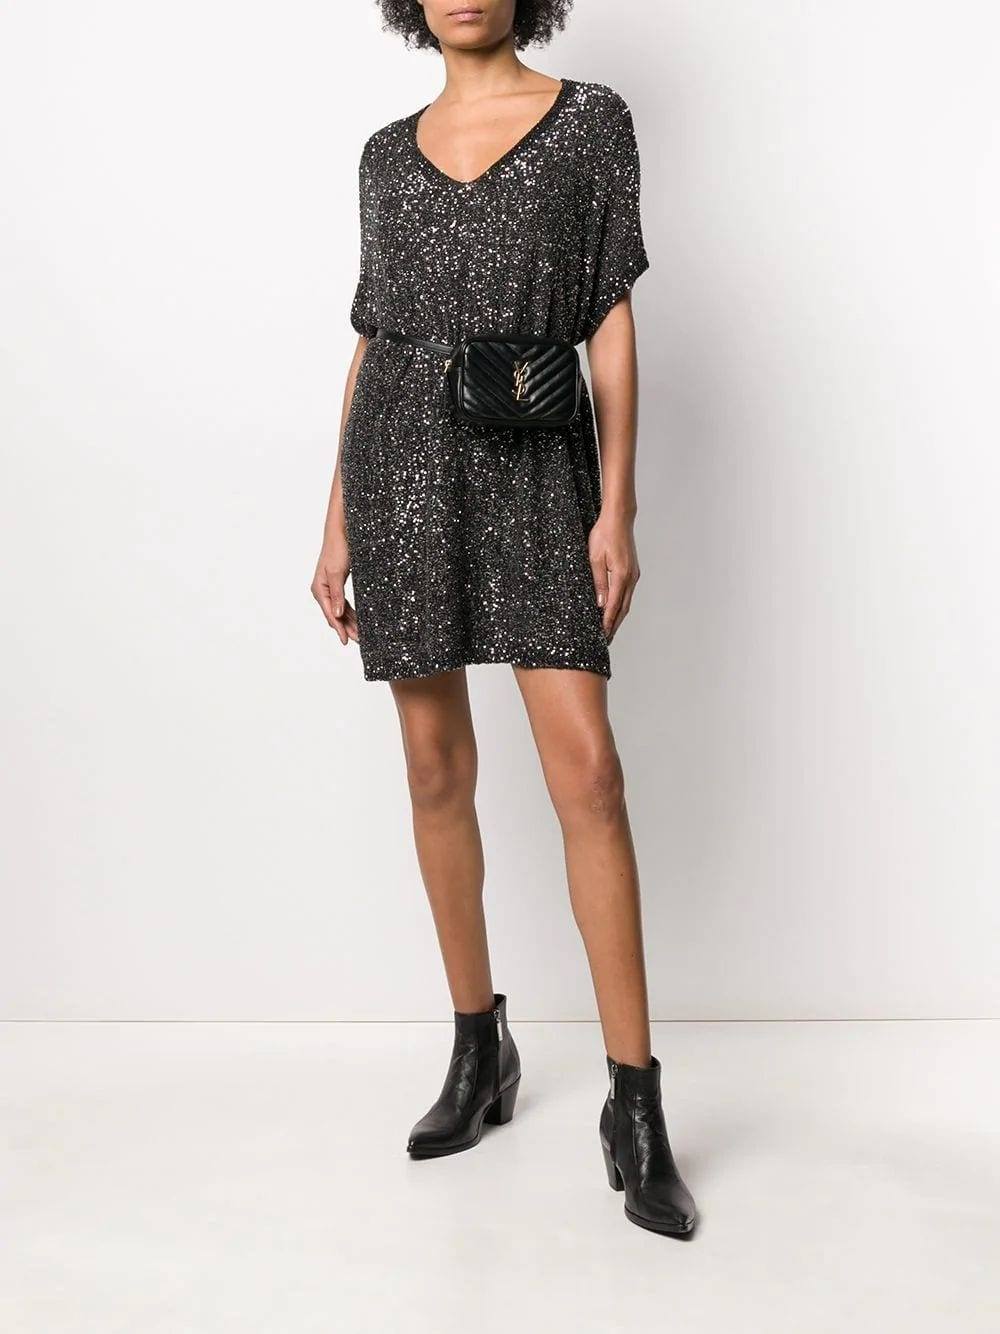 SAINT LAURENT Black And Silver Sequin Kaftan Dress